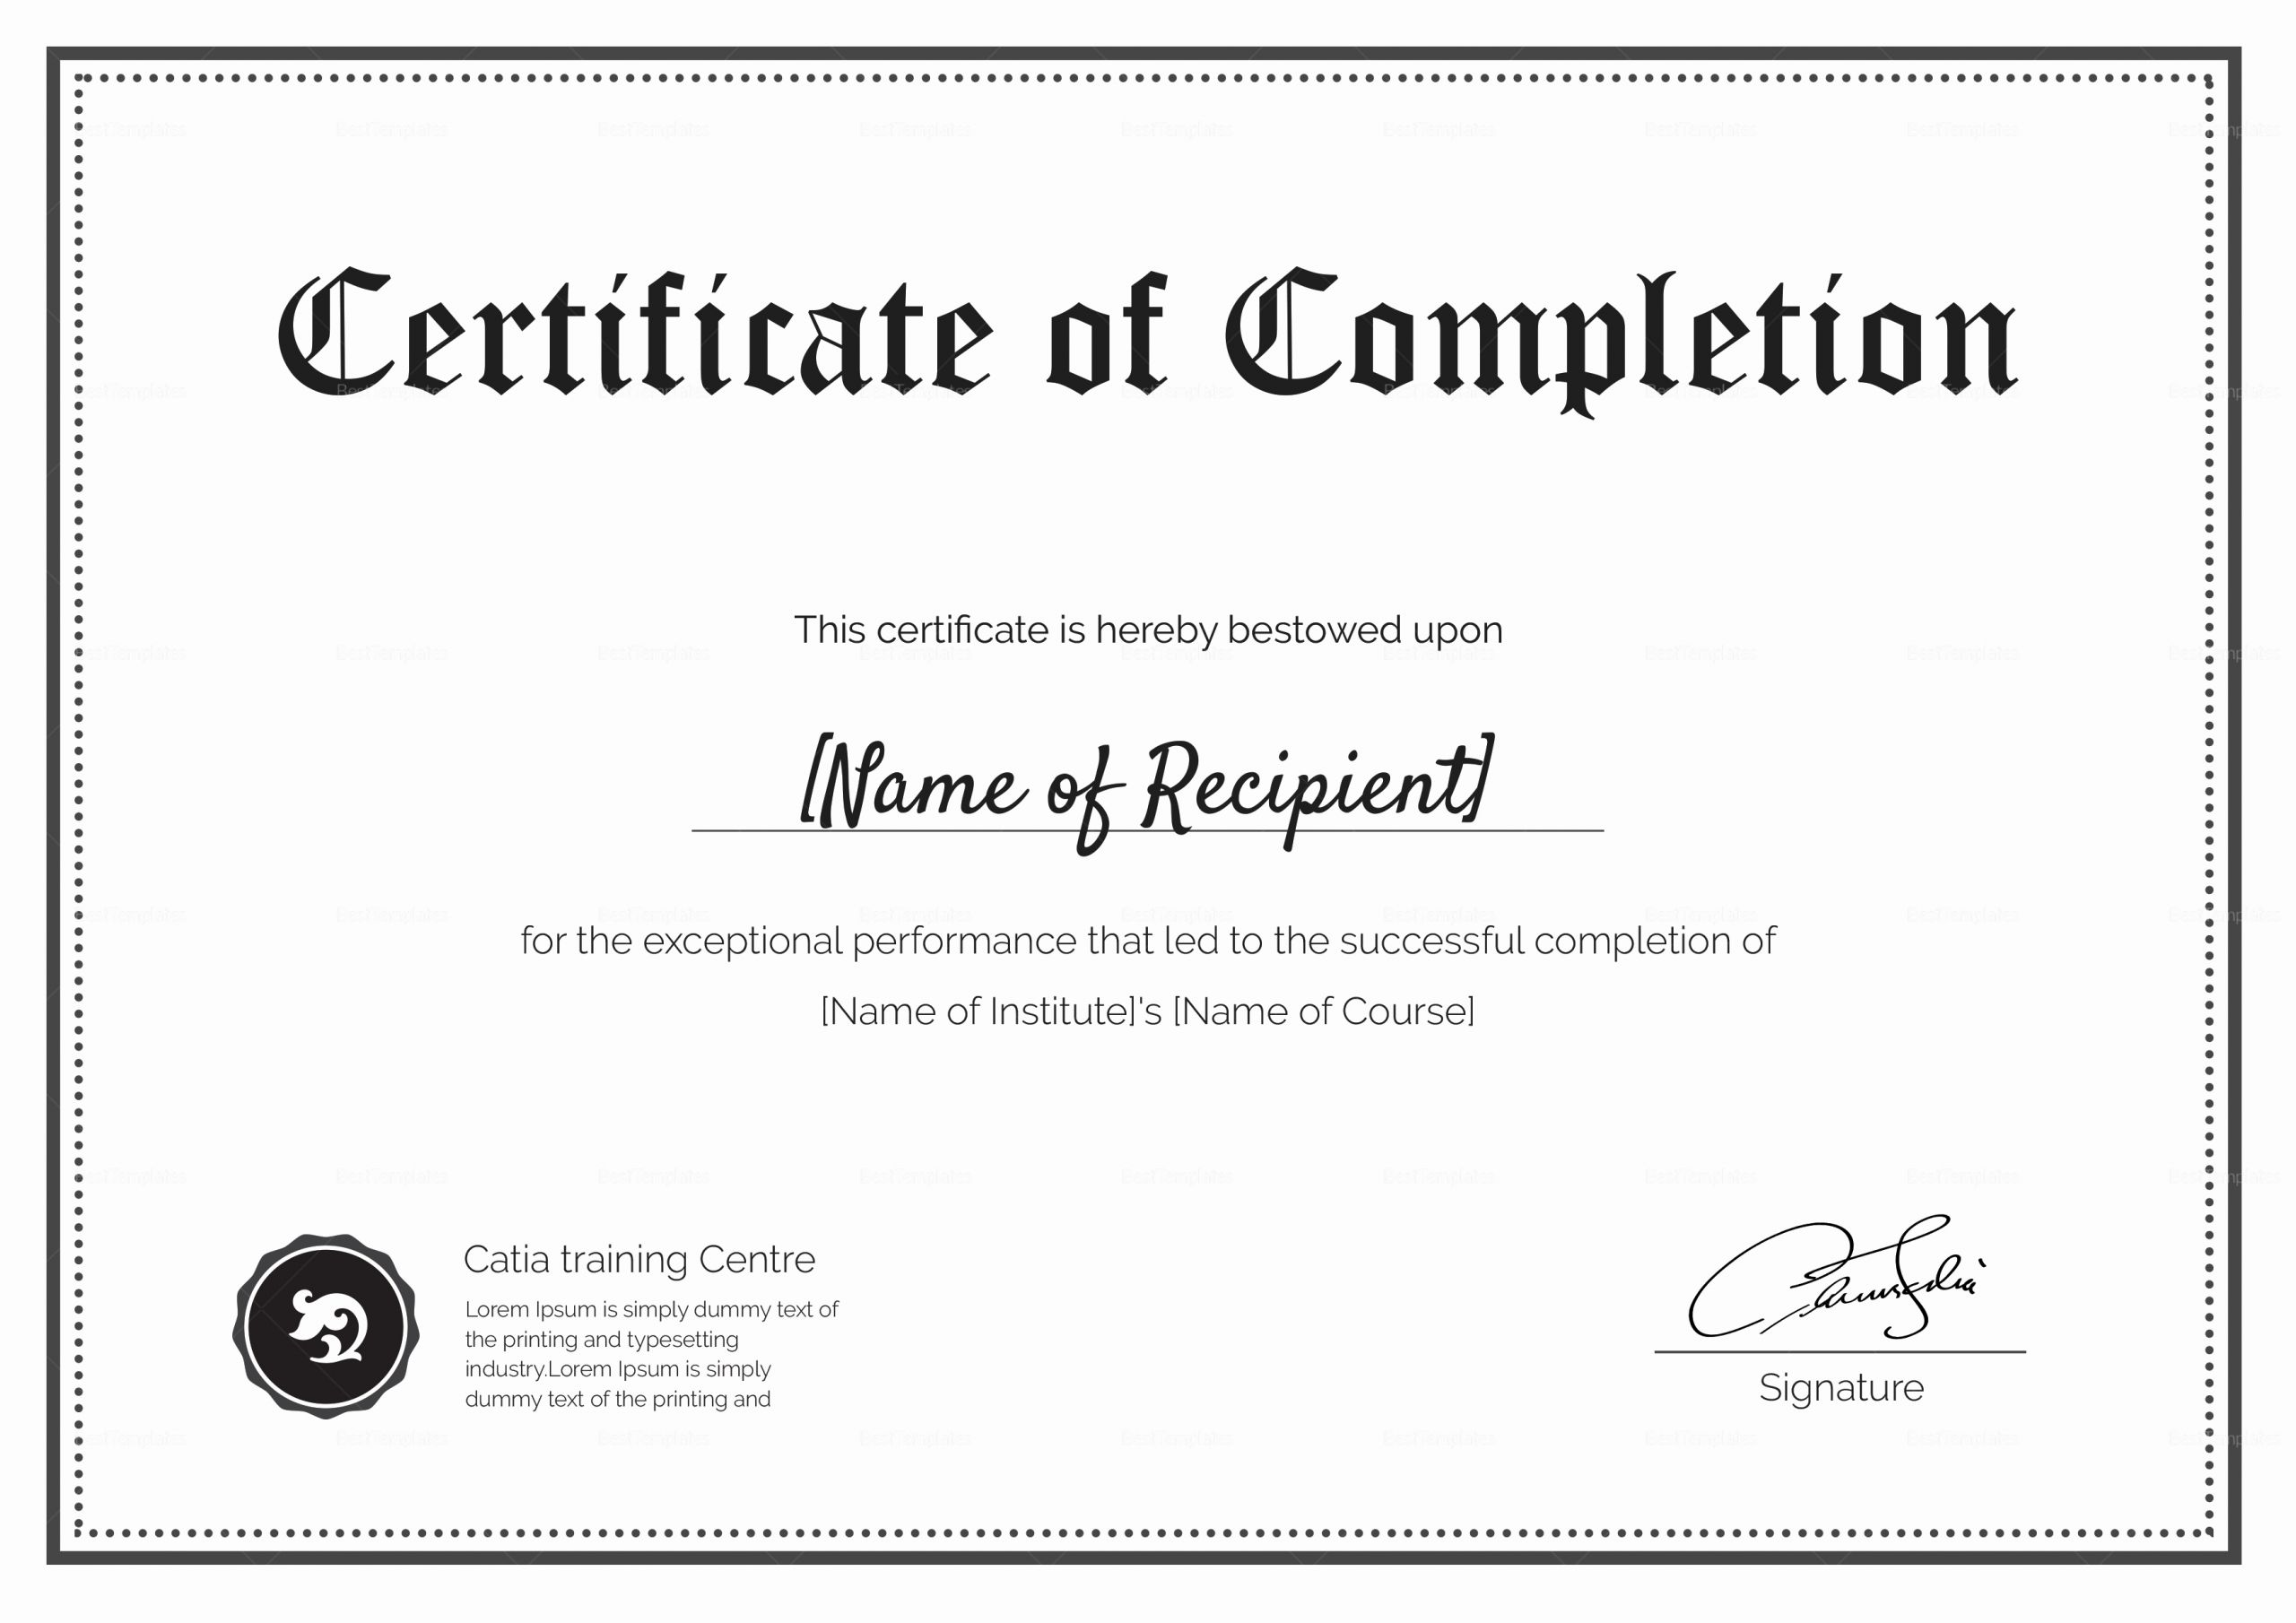 Certificates Of Completion Template Fresh Blank Pletion Certificate Design Template In Psd Word